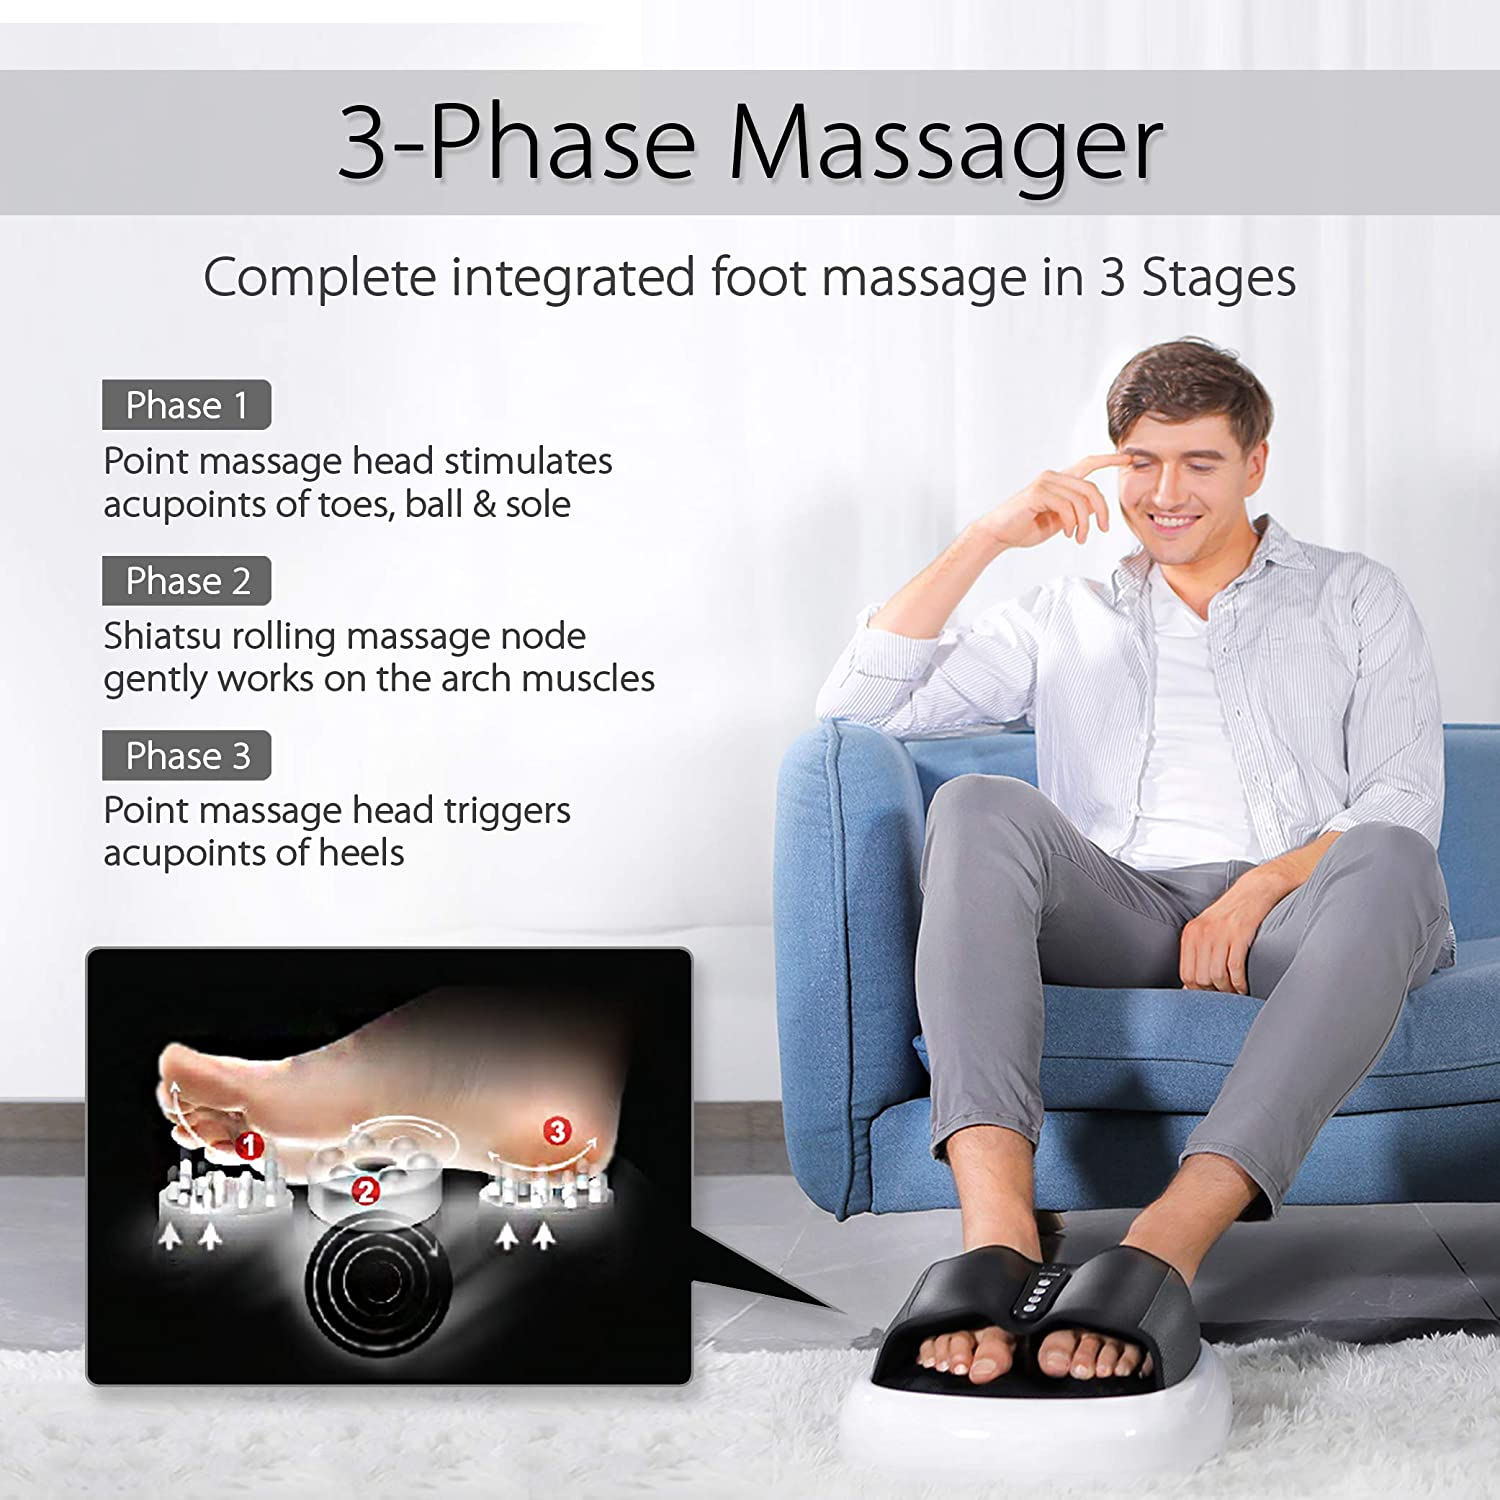 HealthSense LM 310 Heal-Touch Foot Massager with Heat (LM 330): Amazon.in:  Health & Personal Care